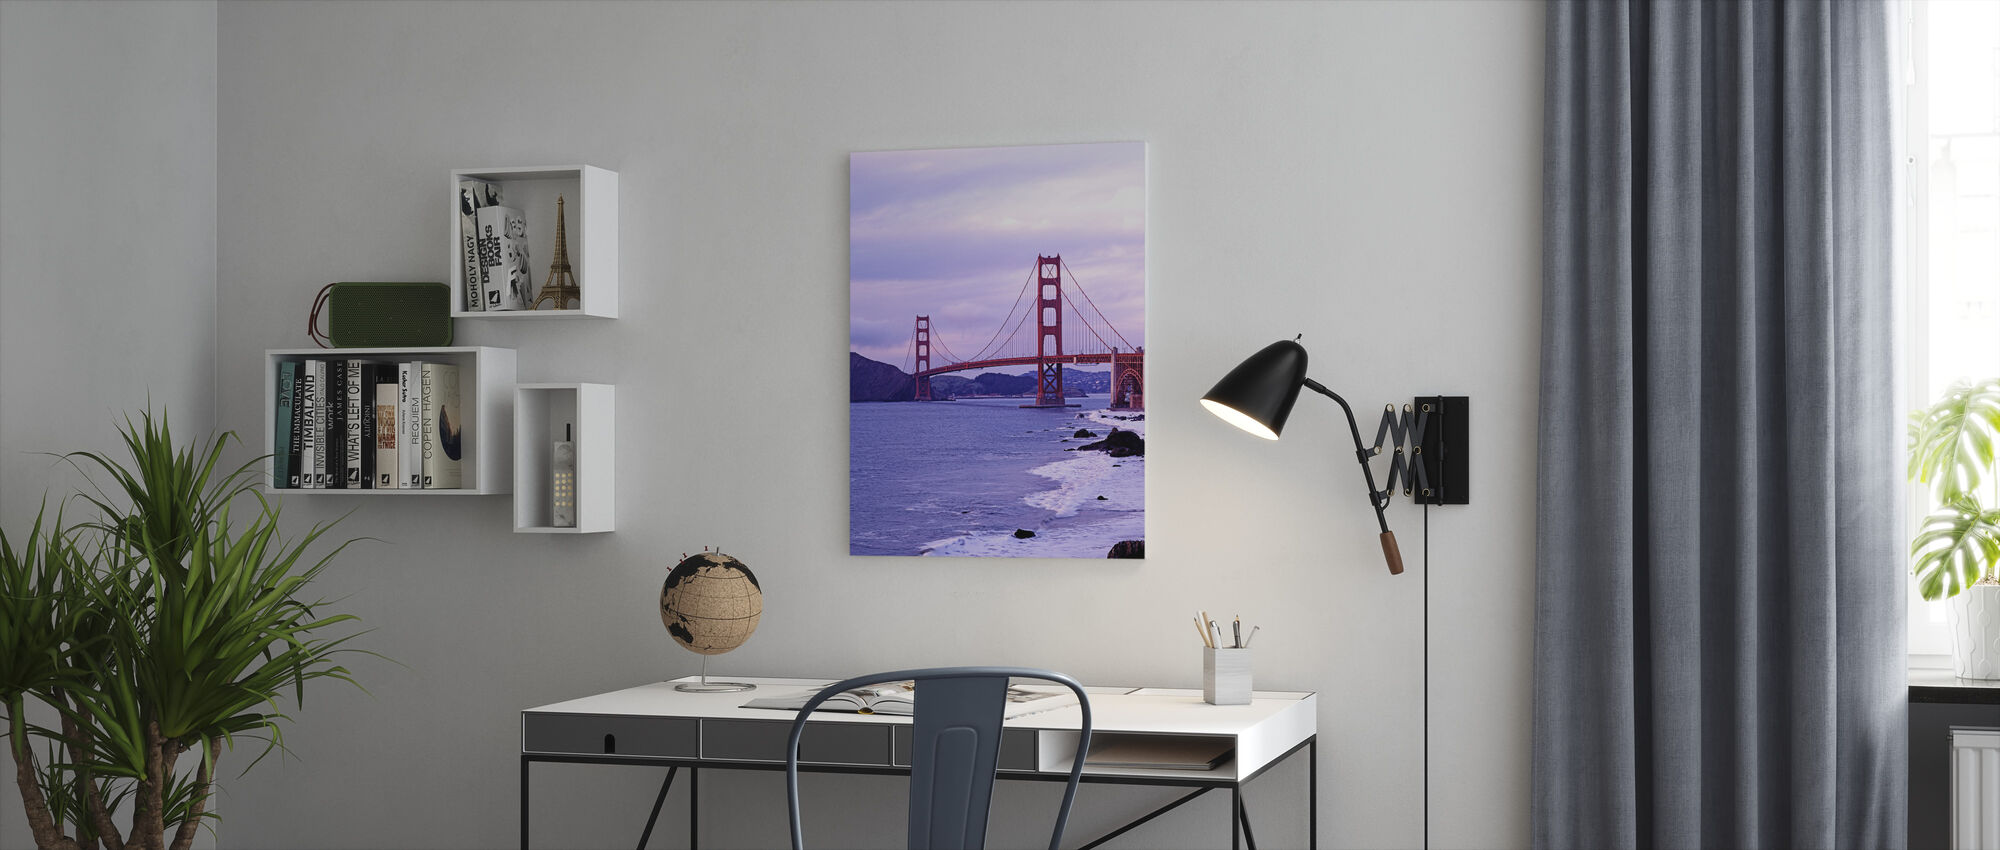 Bay Bridge in Purple Haze - Canvas print - Office